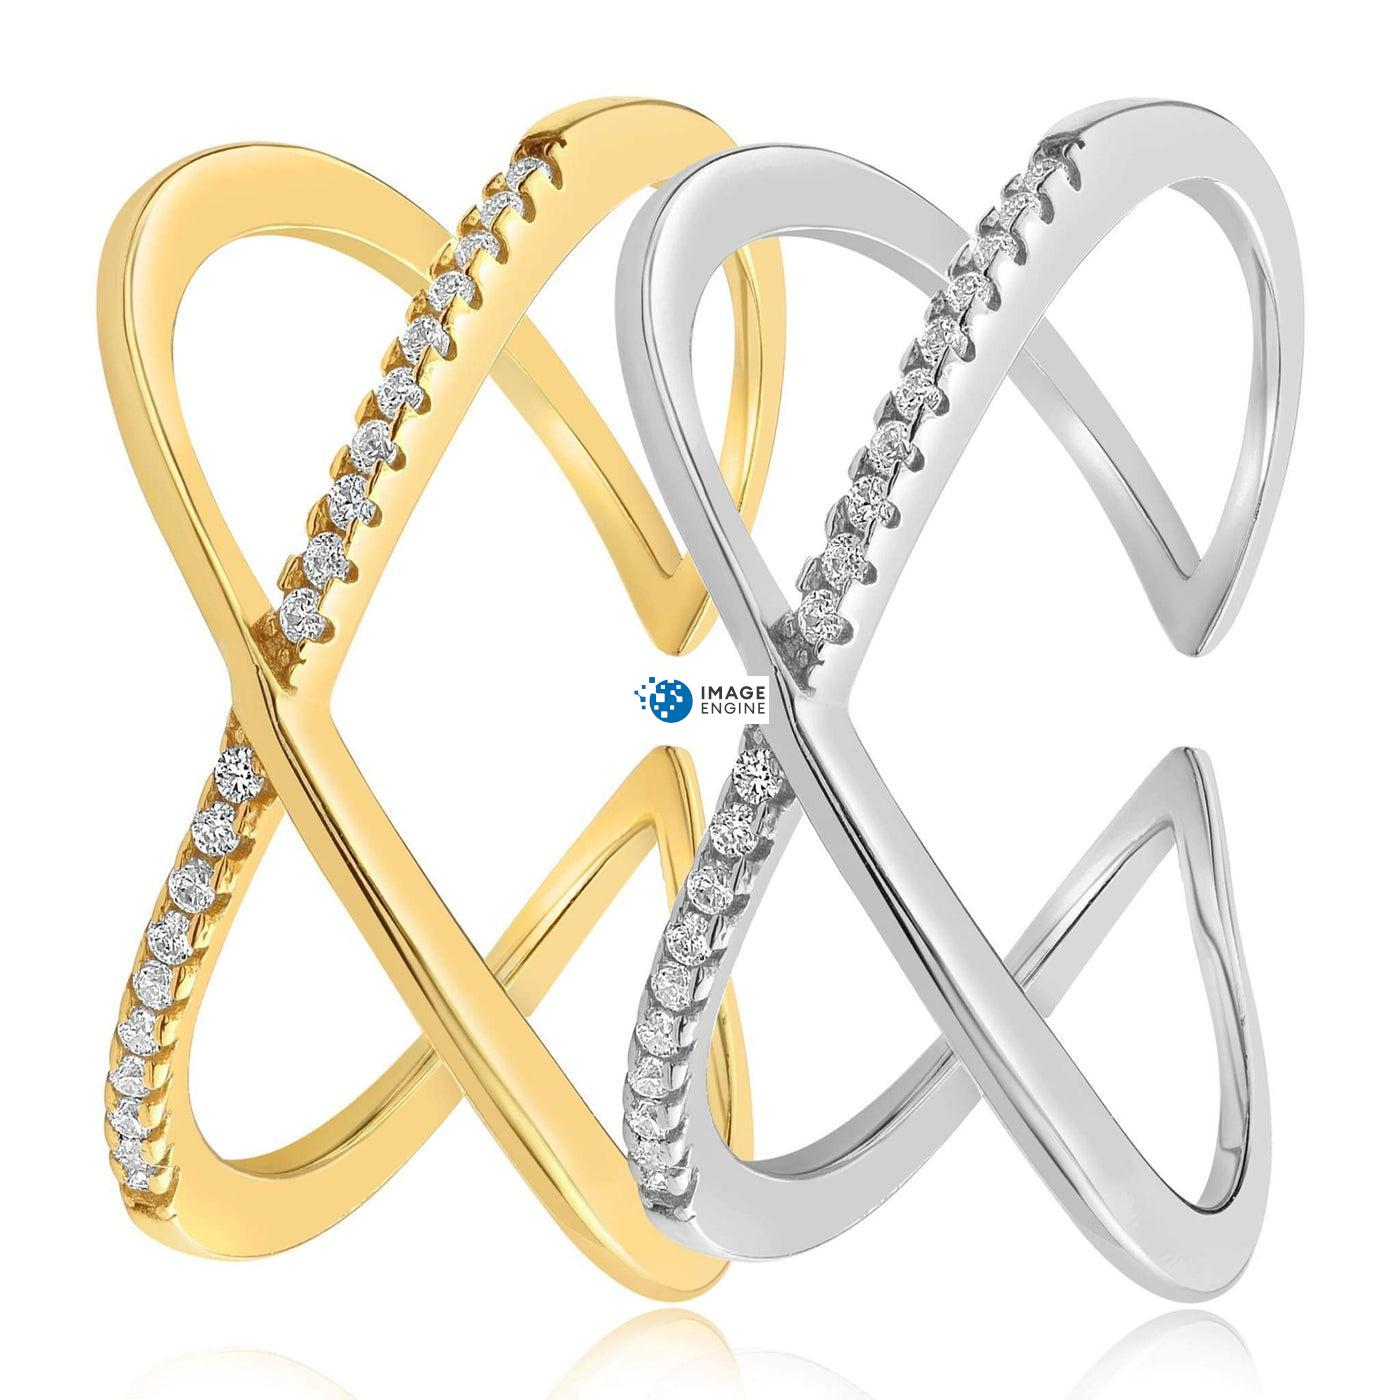 Nadia X Infinity Ring - Side by Side - 18K Yellow Gold and 925 Sterling Silver